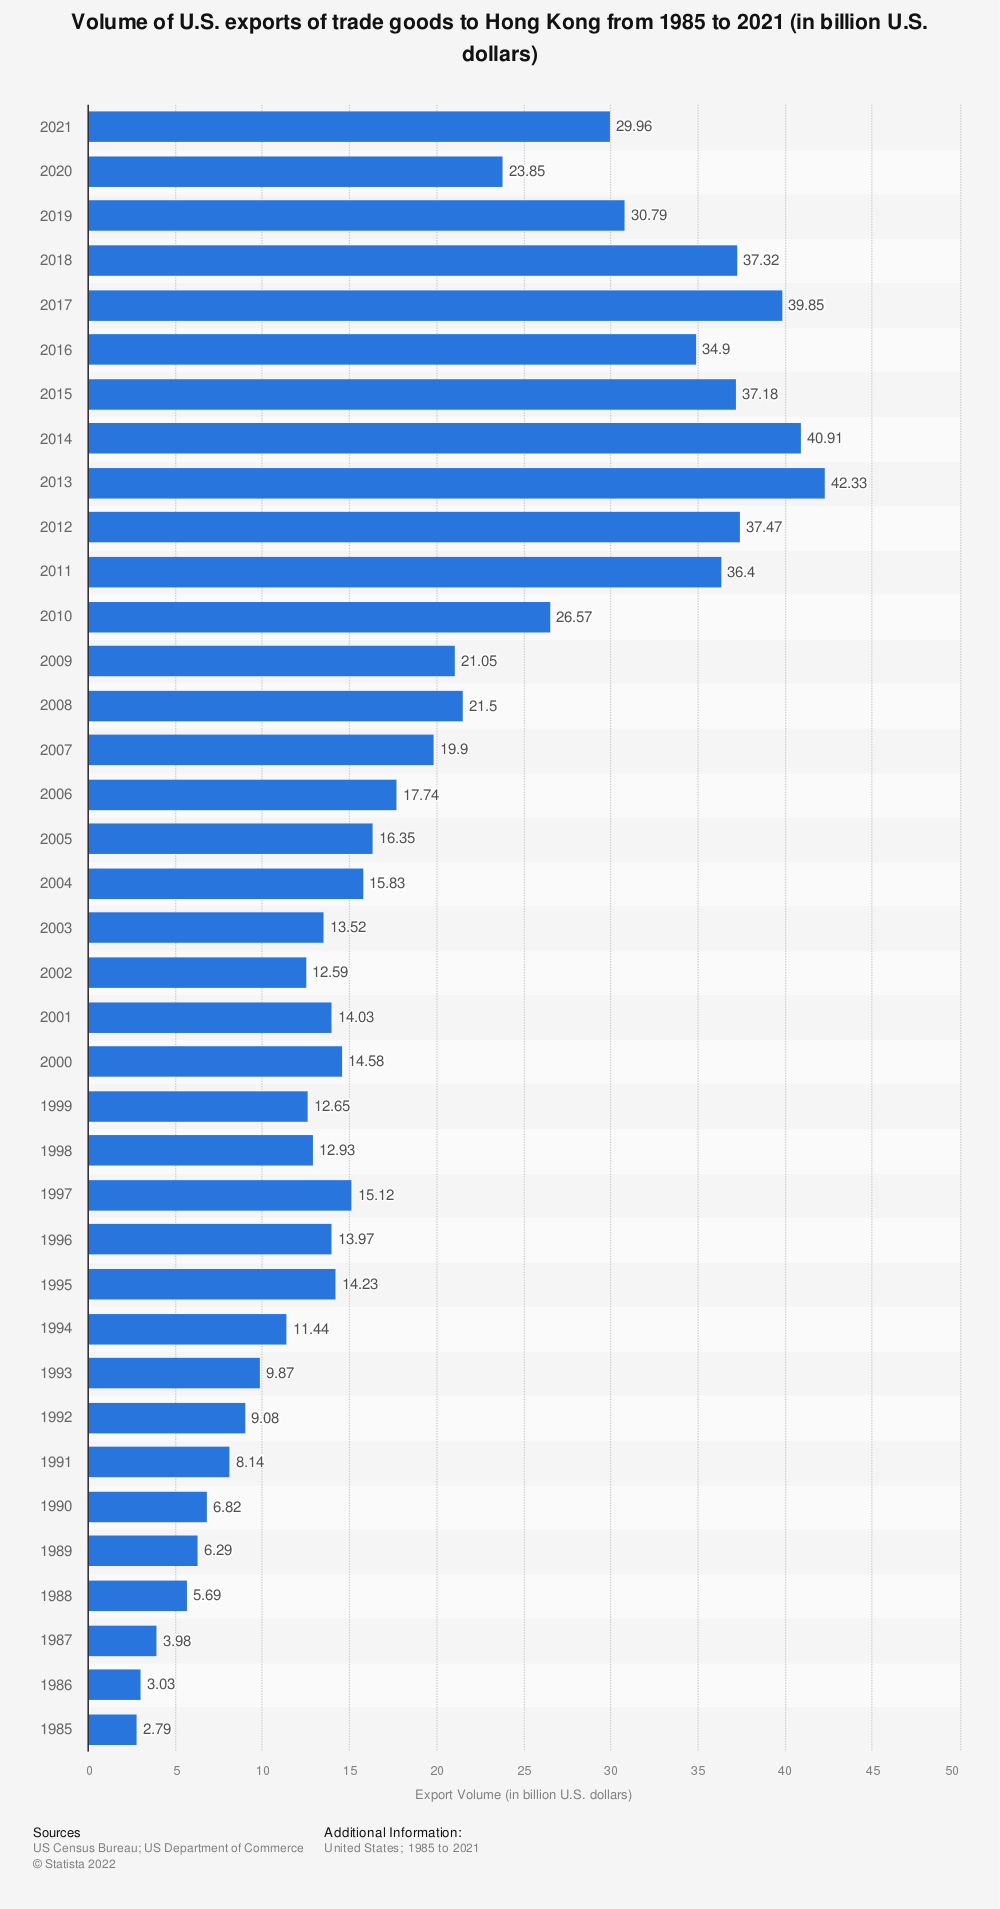 Statistic: Volume of U.S. exports of trade goods to Hong Kong from 1985 to 2019 (in billion U.S. dollars) | Statista